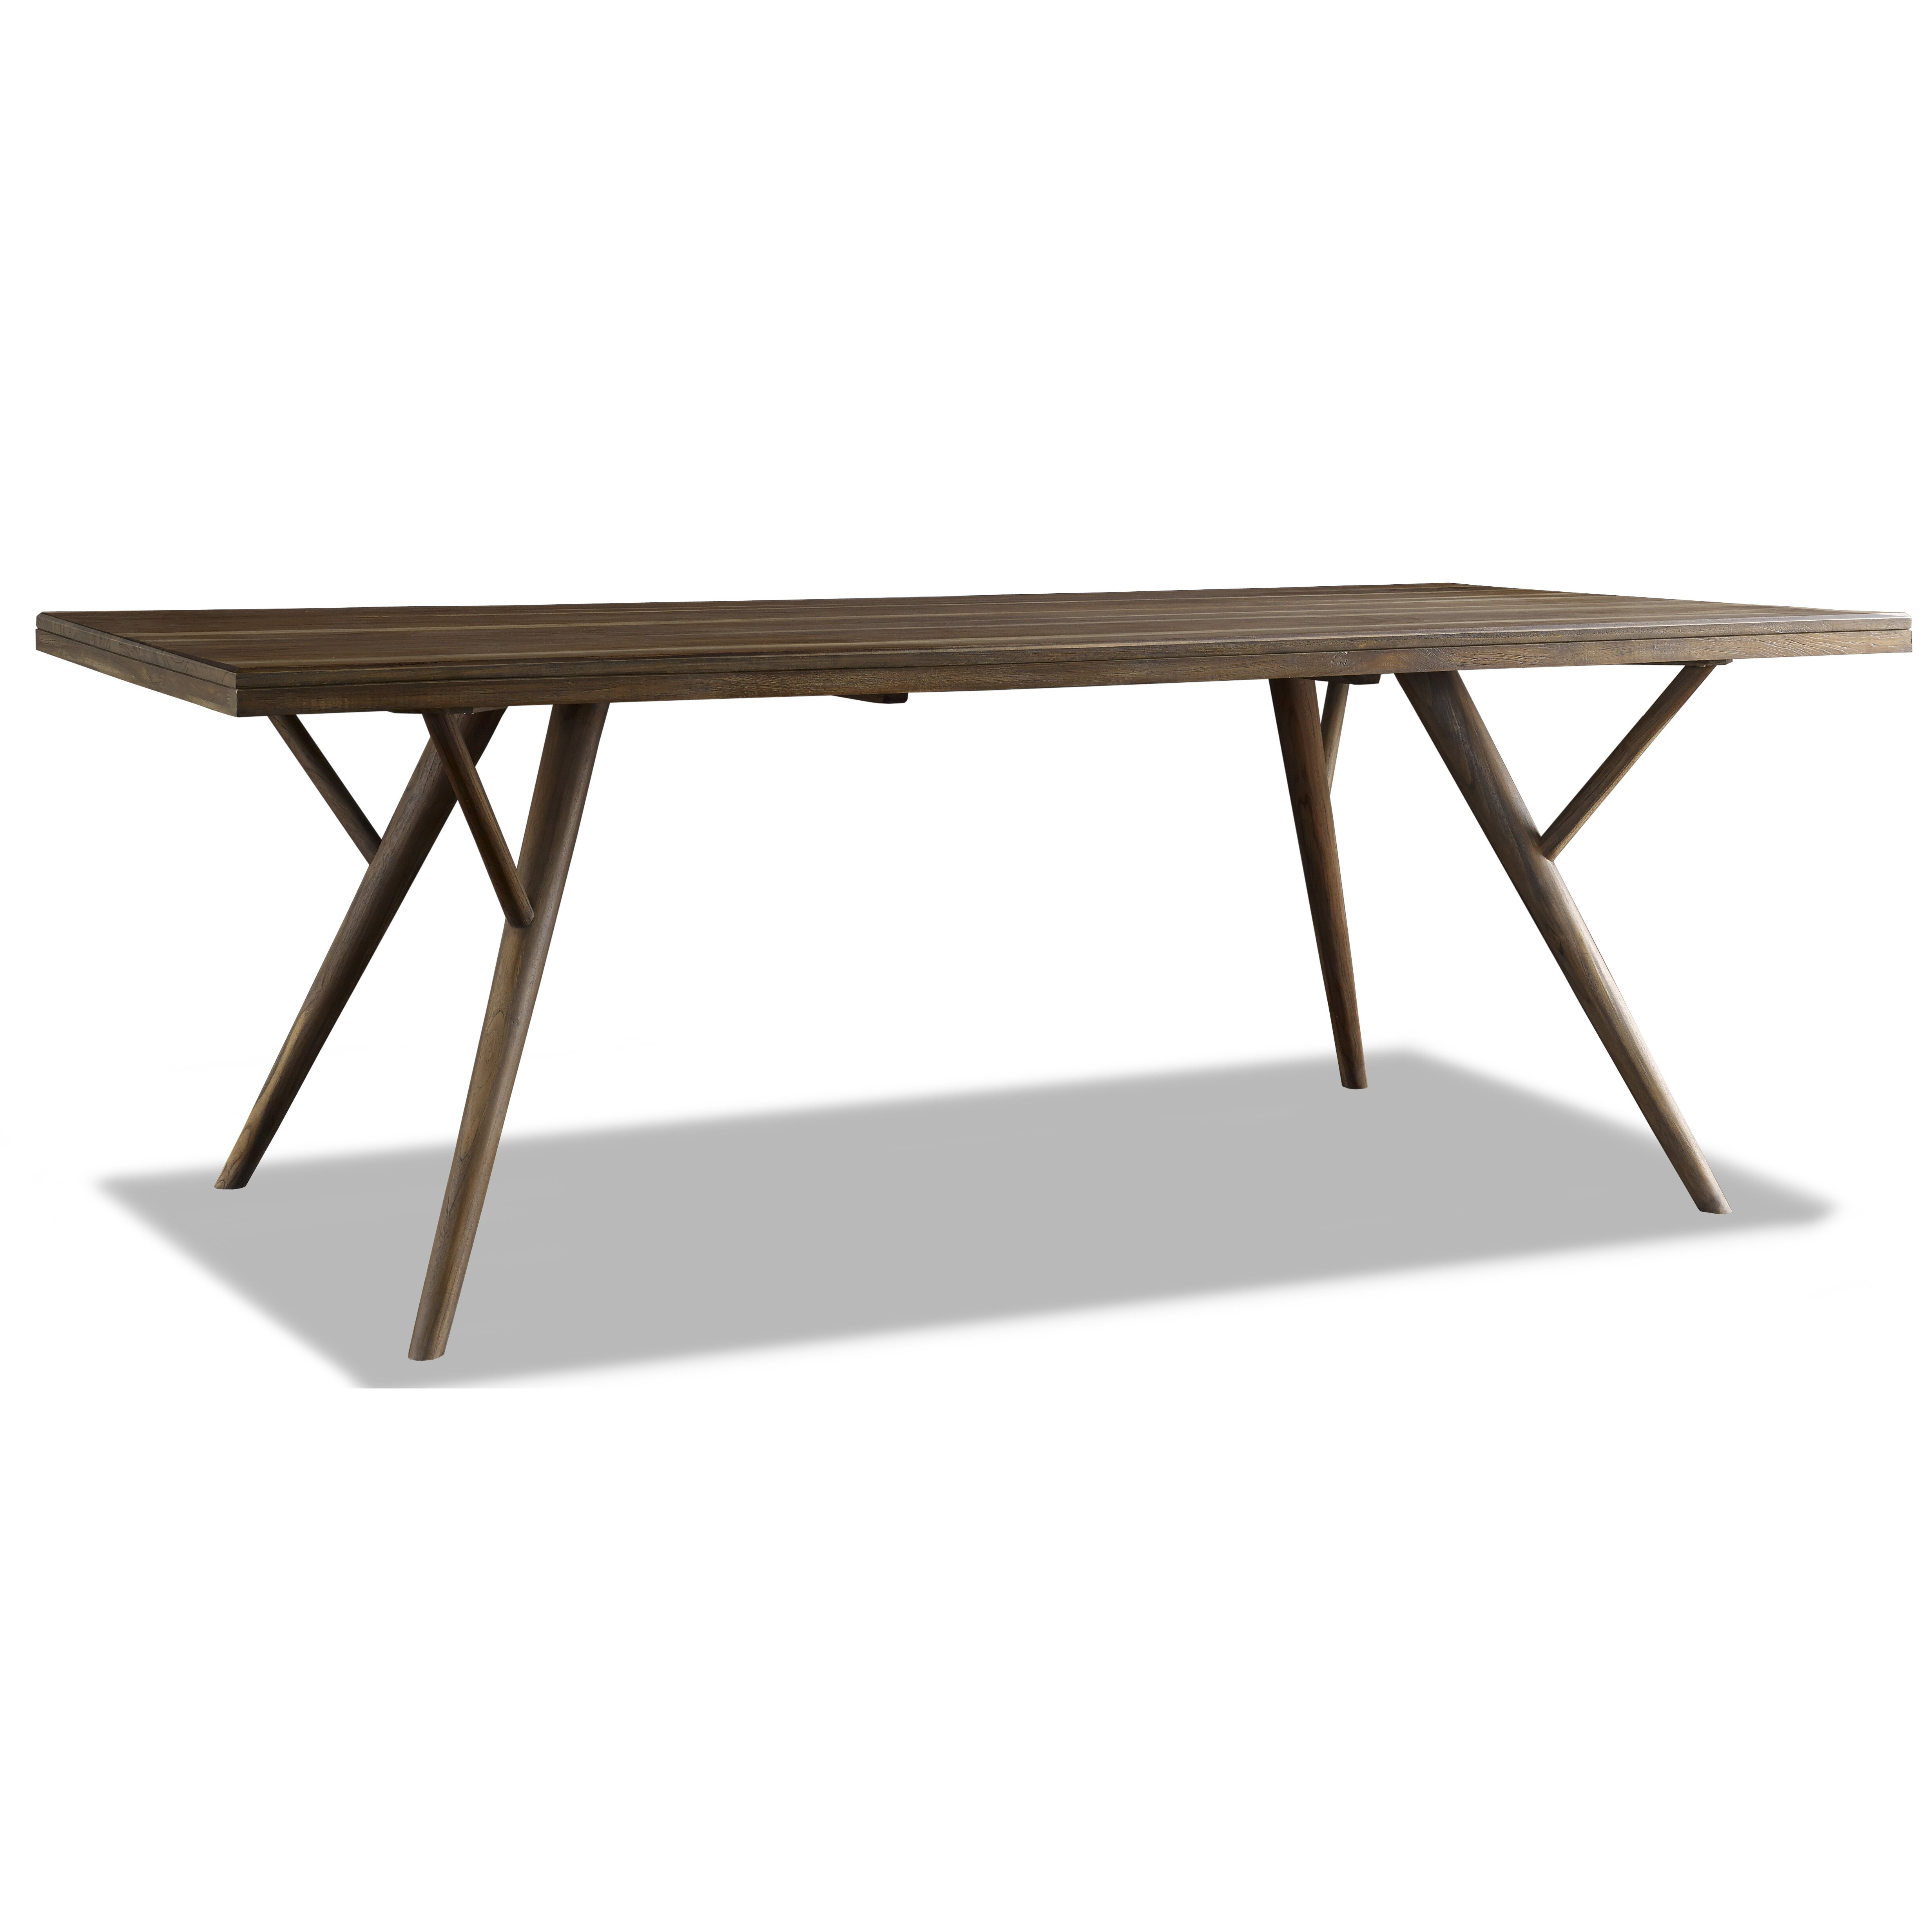 Brownstonefurniture crawford dining table for Wayfair dining table